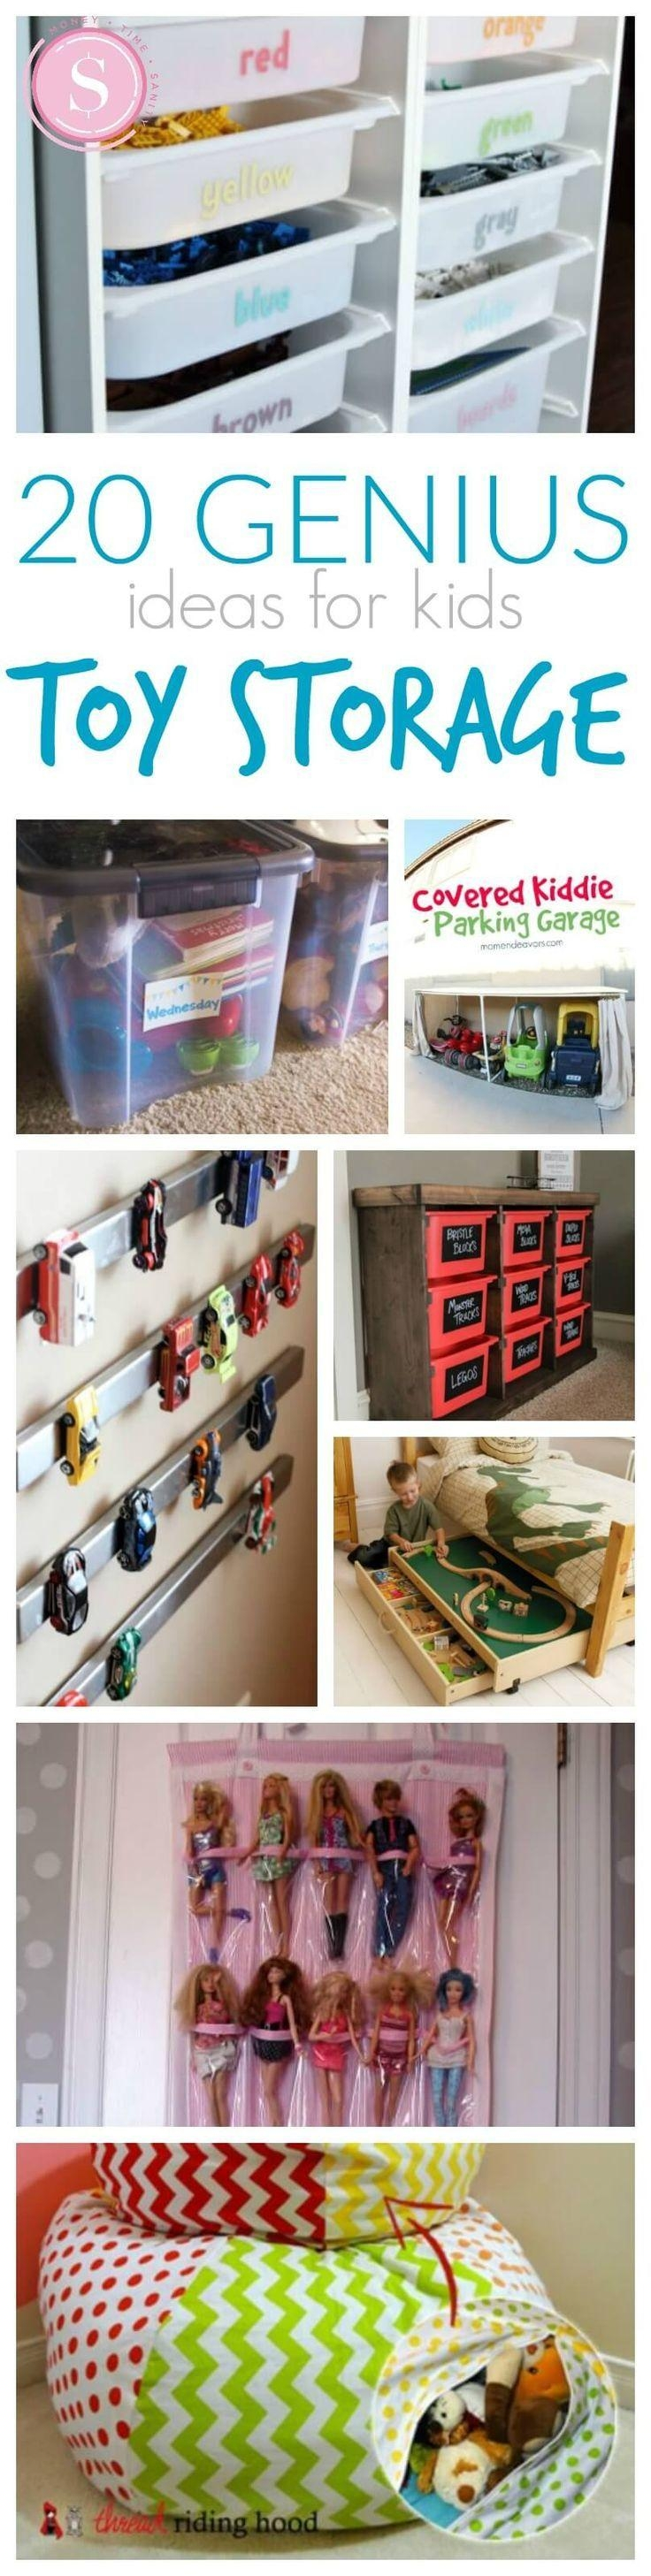 Best 25+ Hot Wheels Bedroom Ideas On Pinterest | Auto Wheels, Hot Intended For Hot Wheels Wall Art (Image 8 of 20)